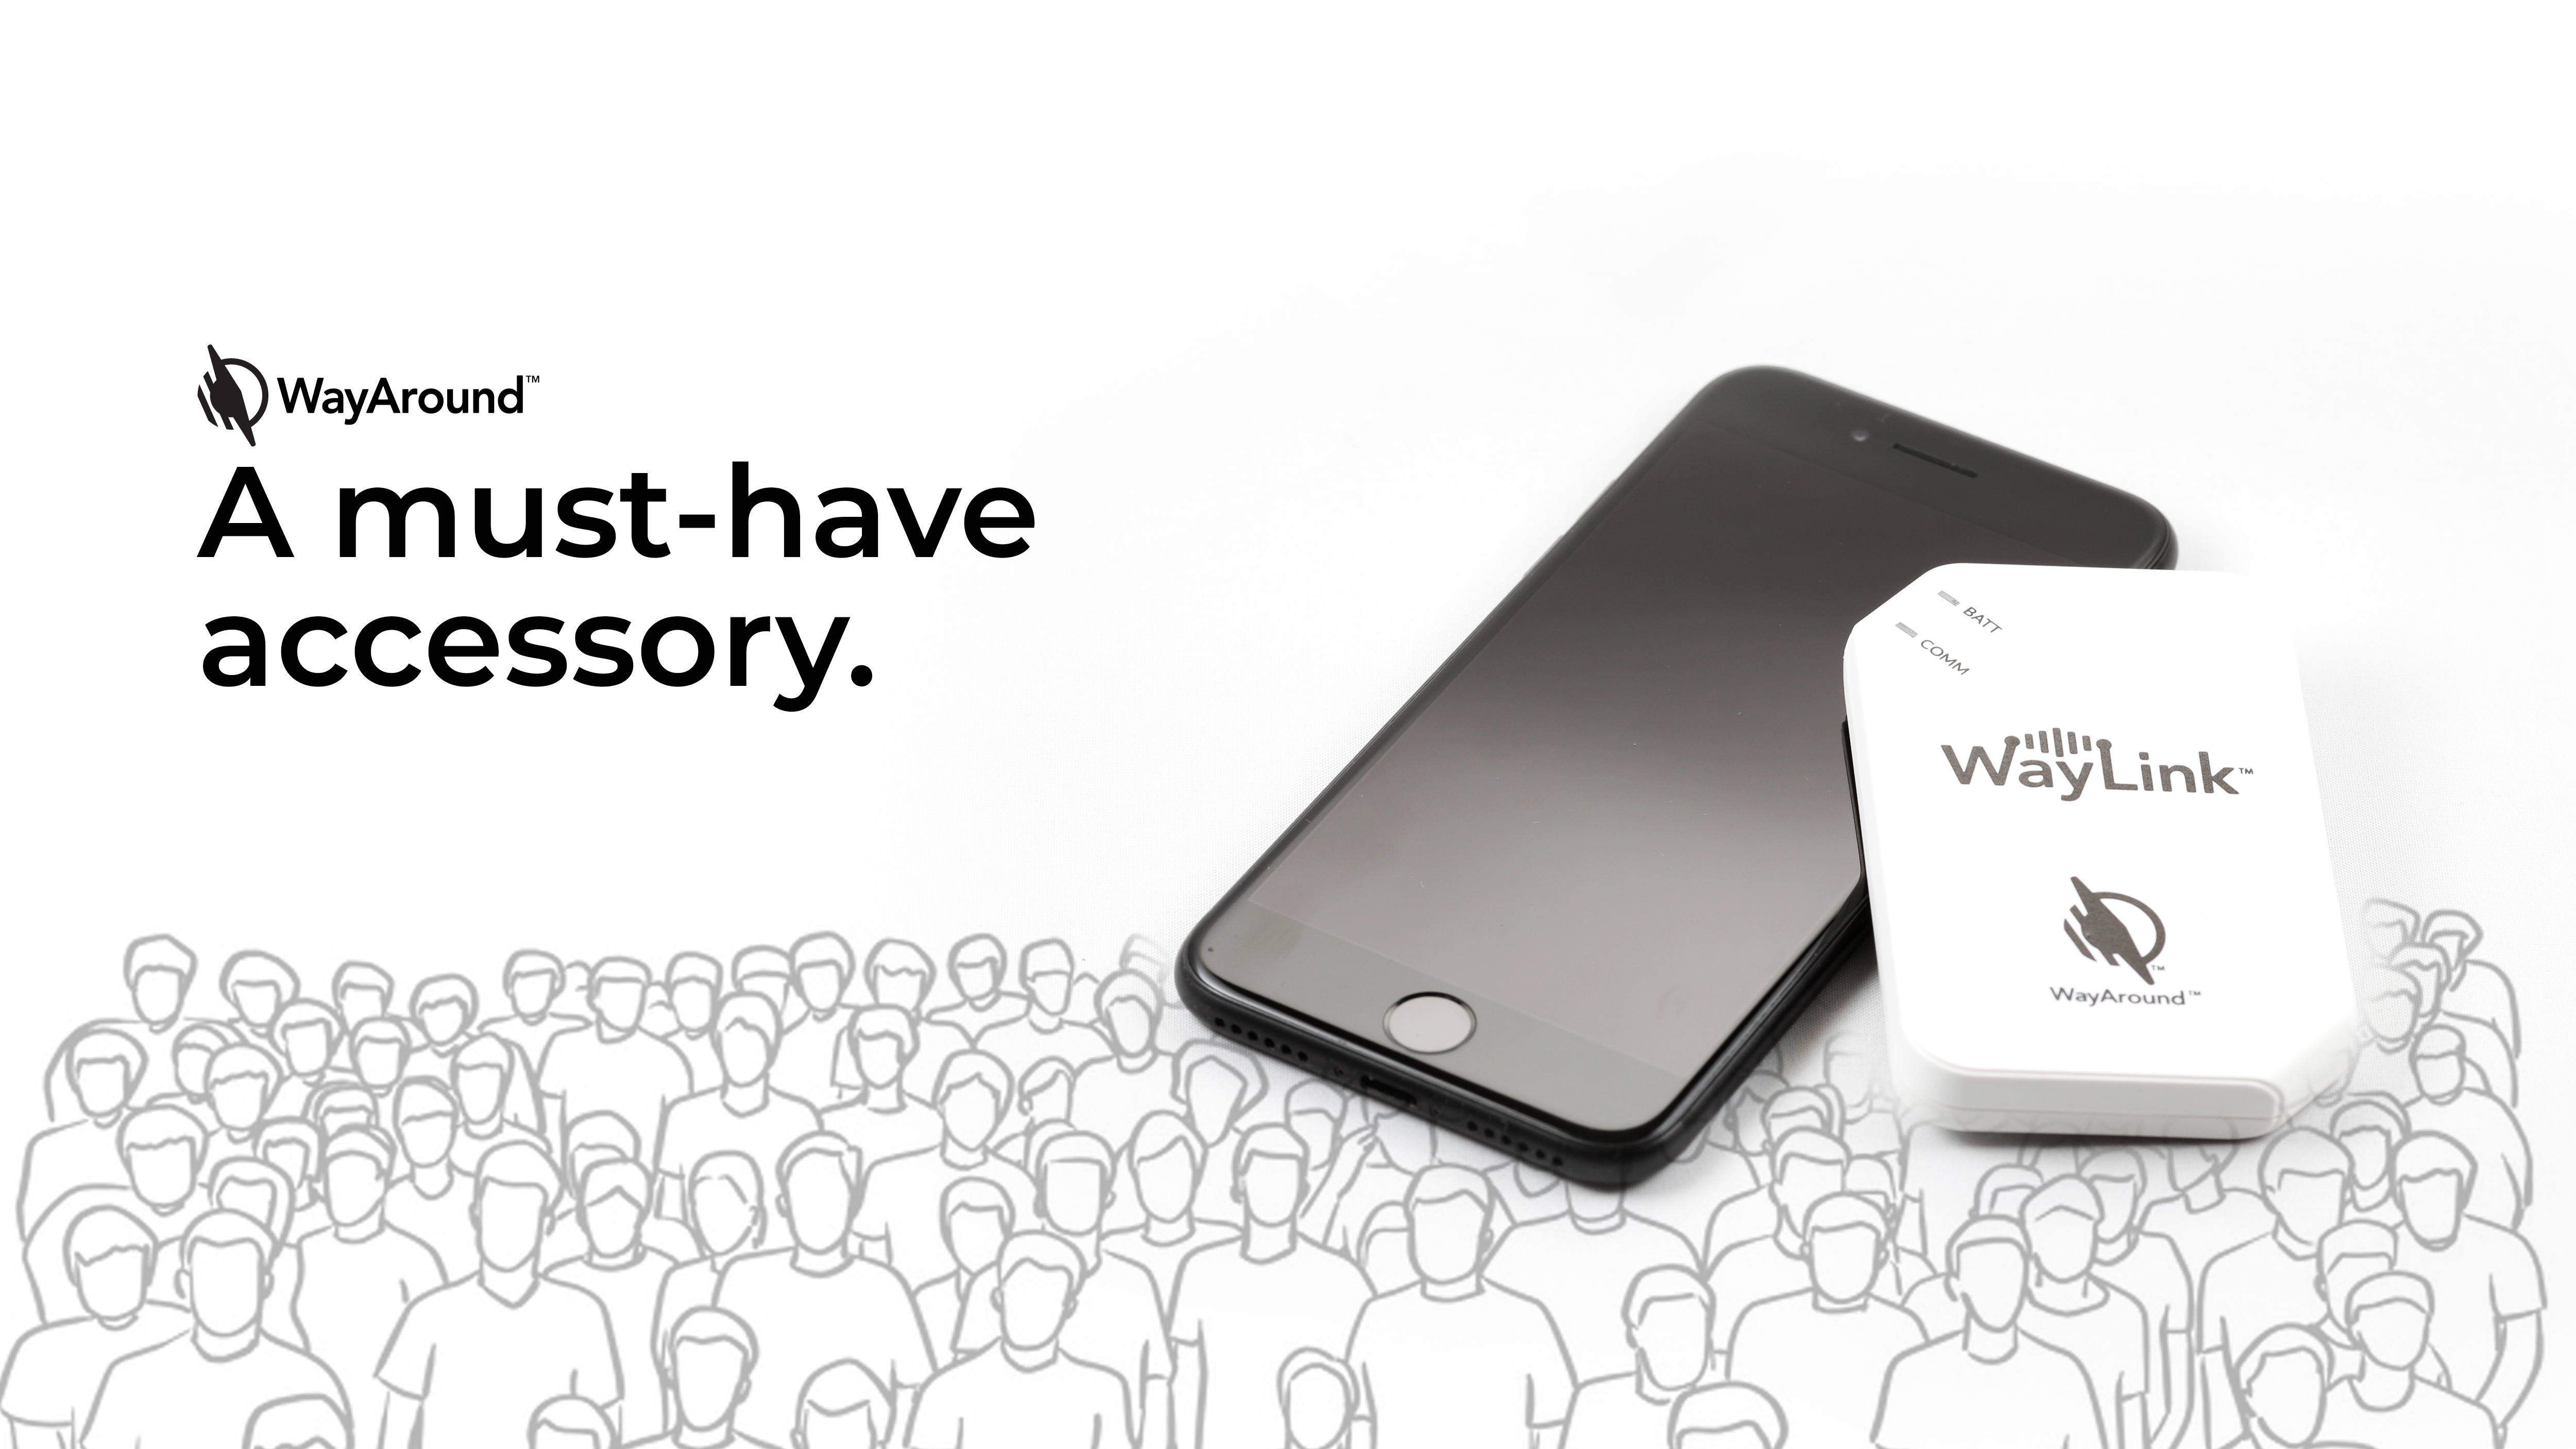 WayAround - A must-have accessory. WayAround logo at left, mobile phone with WayLink scanner leaning on the right side of the phone, graphic of crowd of people in background below